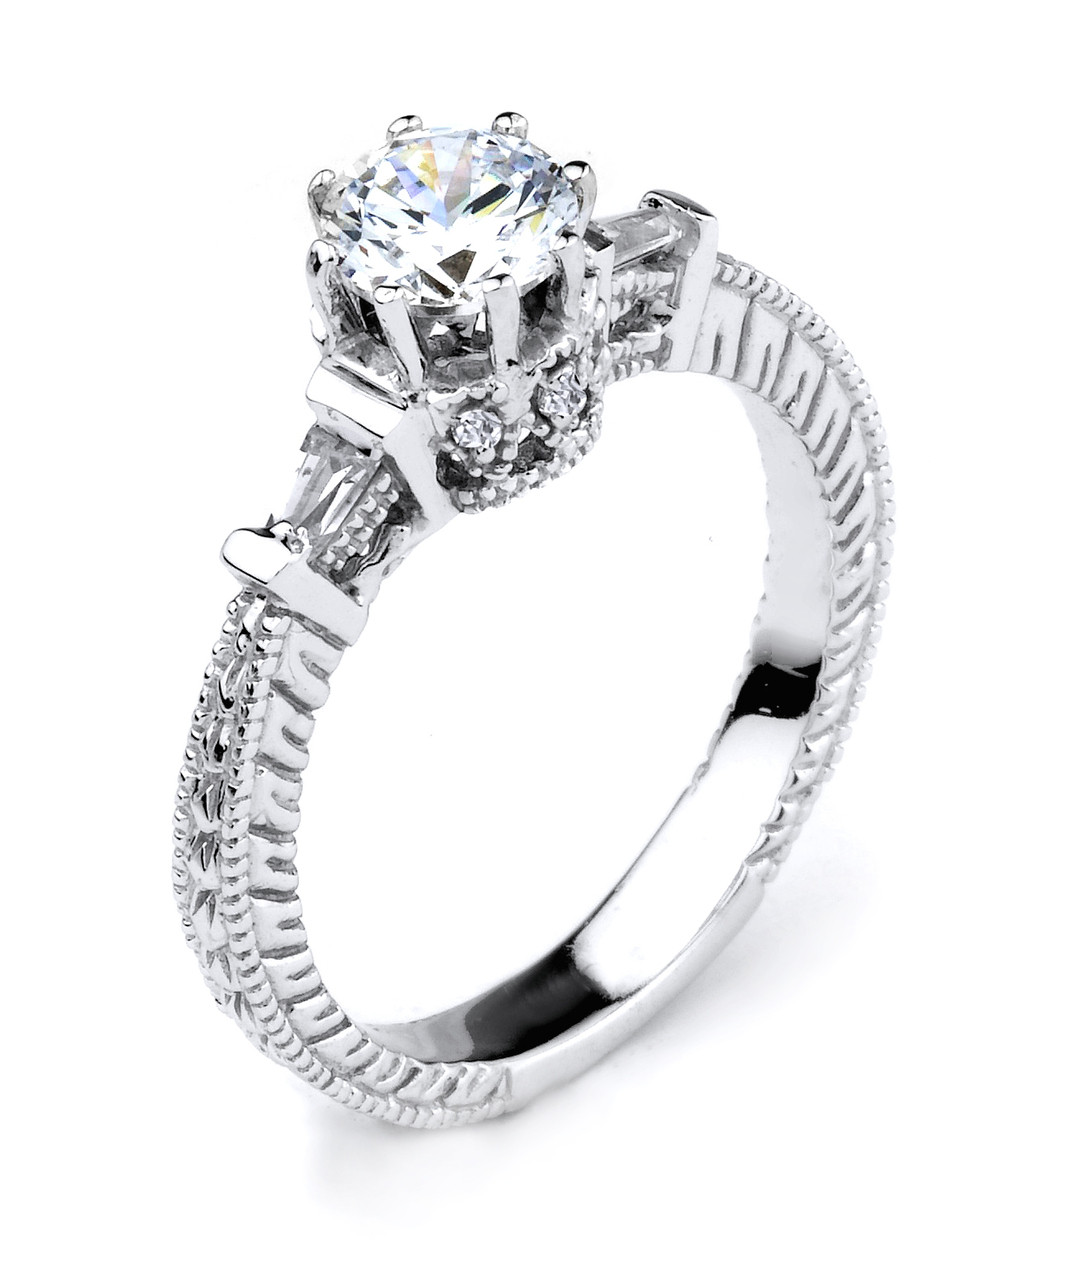 Engagement Ring Cz Engagement Ring White Gold Cz Engagement Ring Cz Solitaire Engagement Ring Round Cz Engagement Ring Cz Engagement Ring